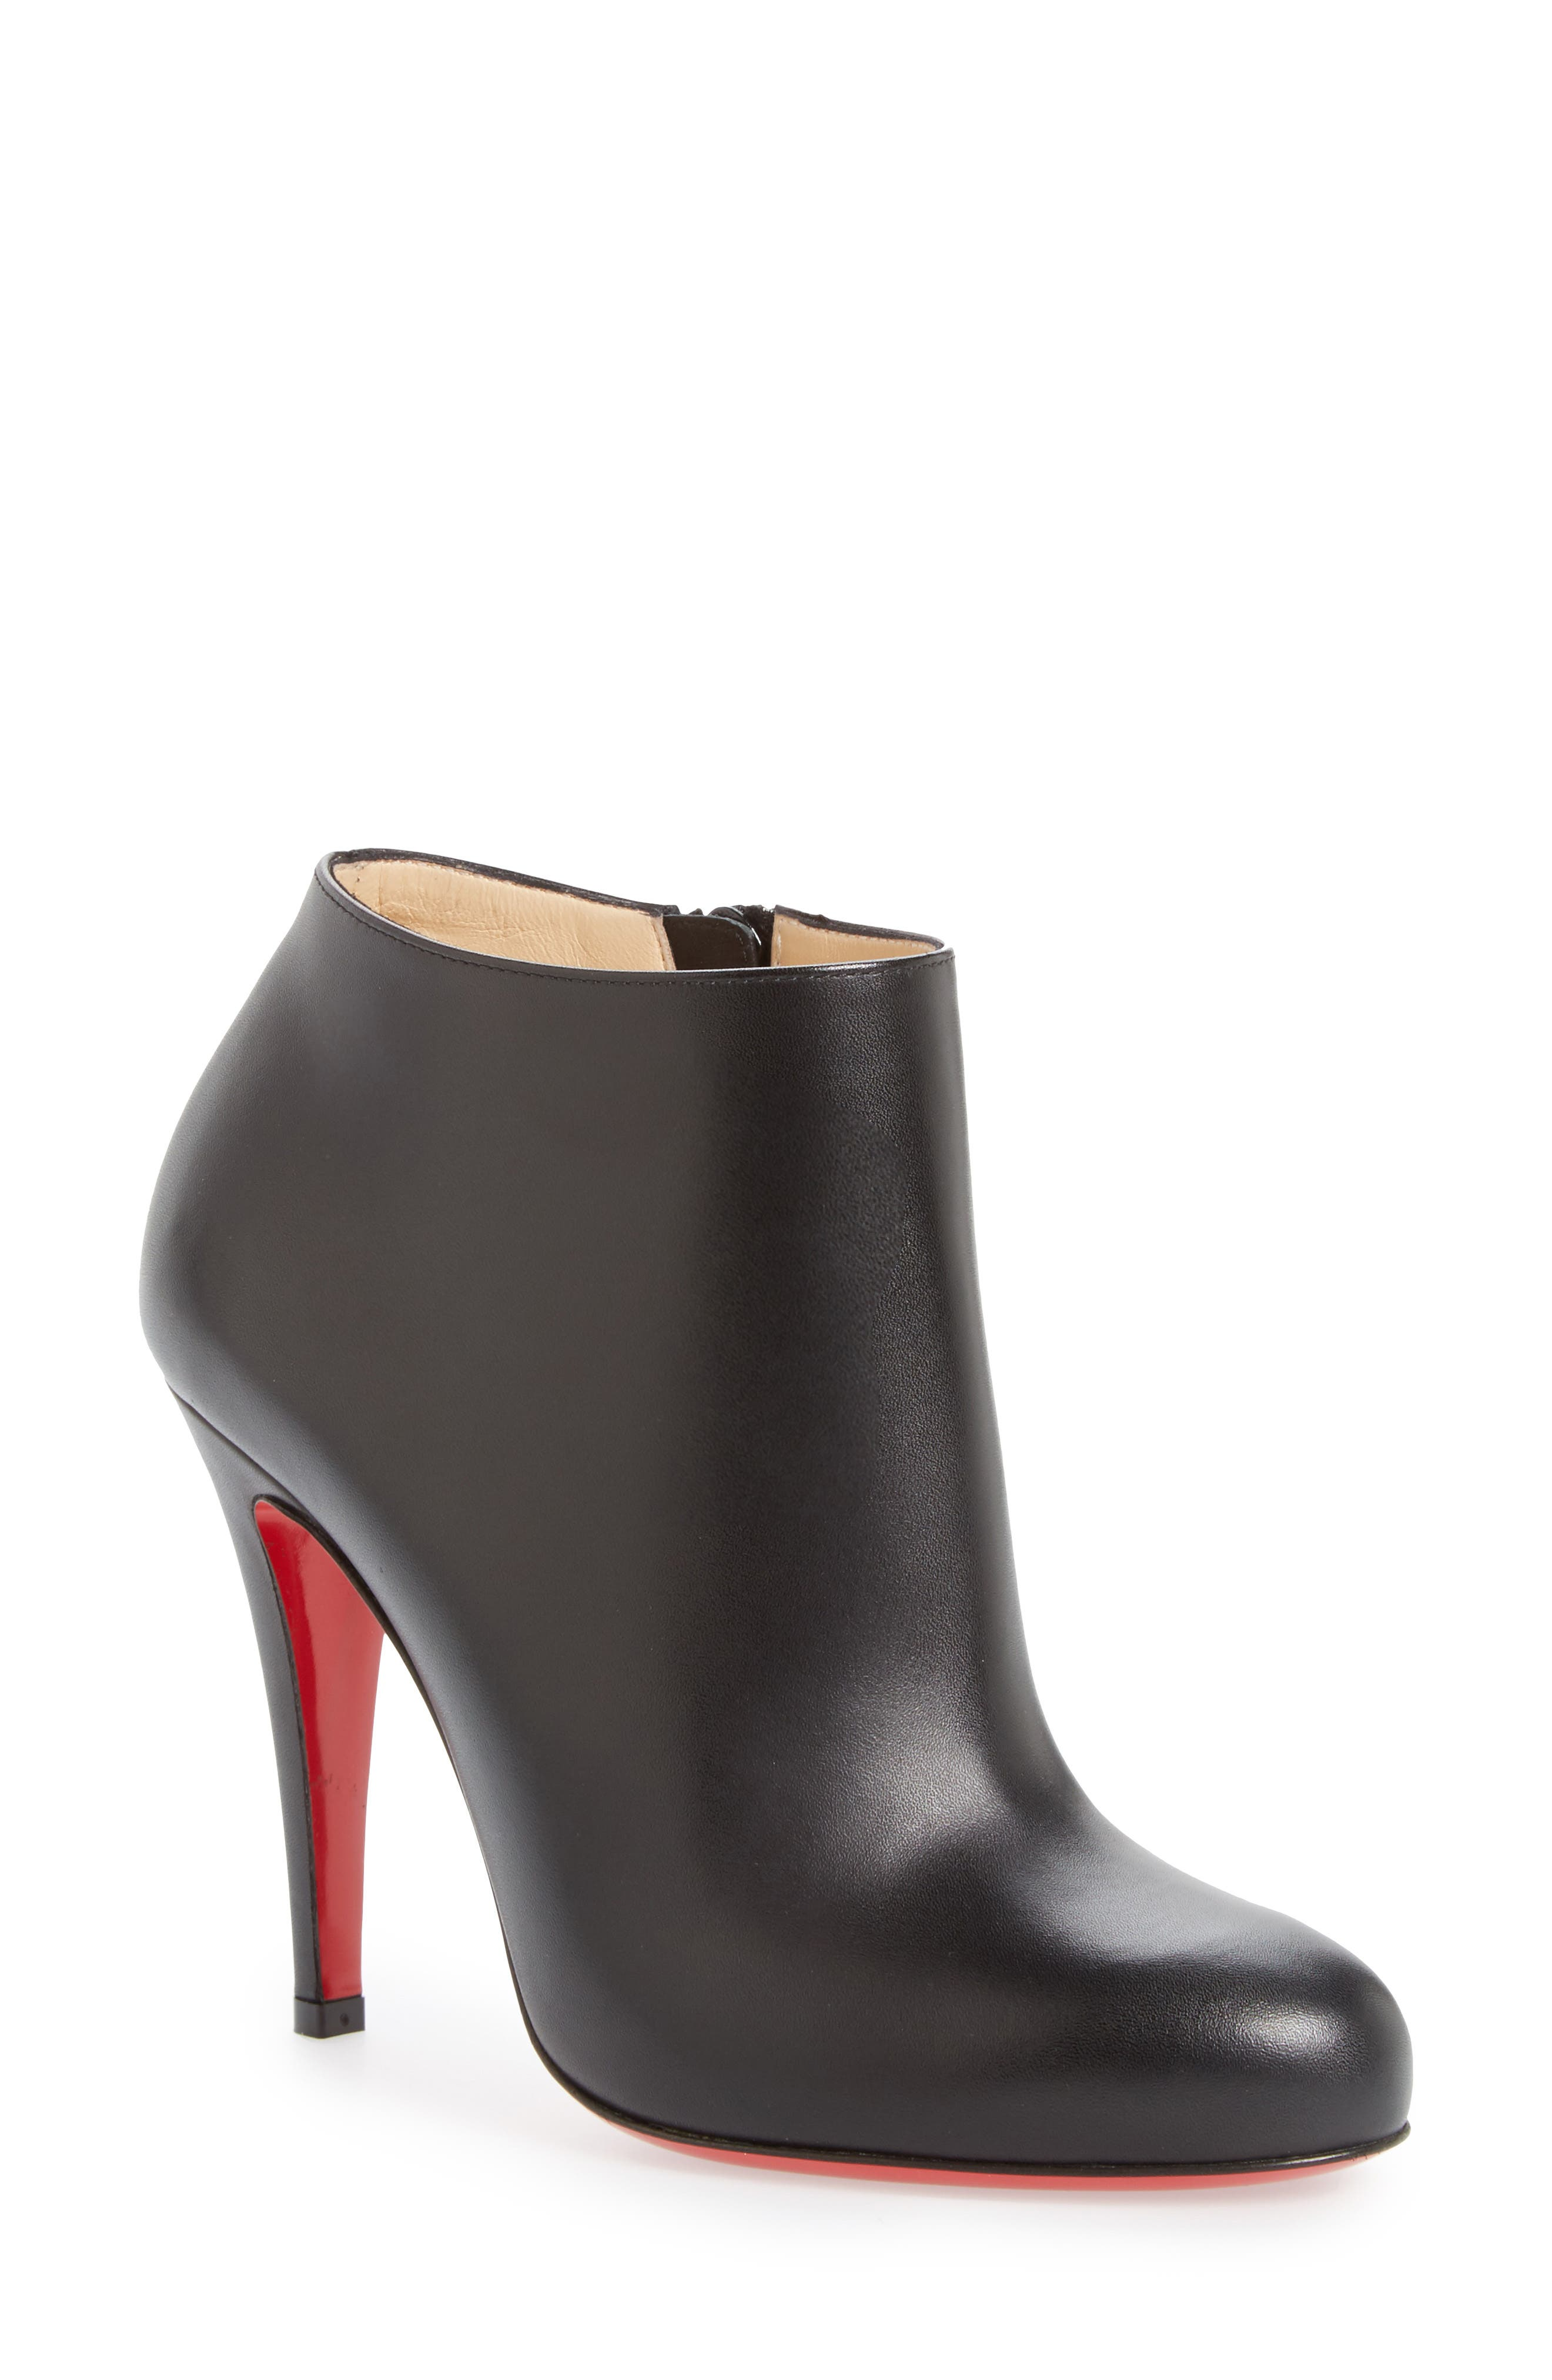 Christian Louboutin Belle Round Toe Bootie